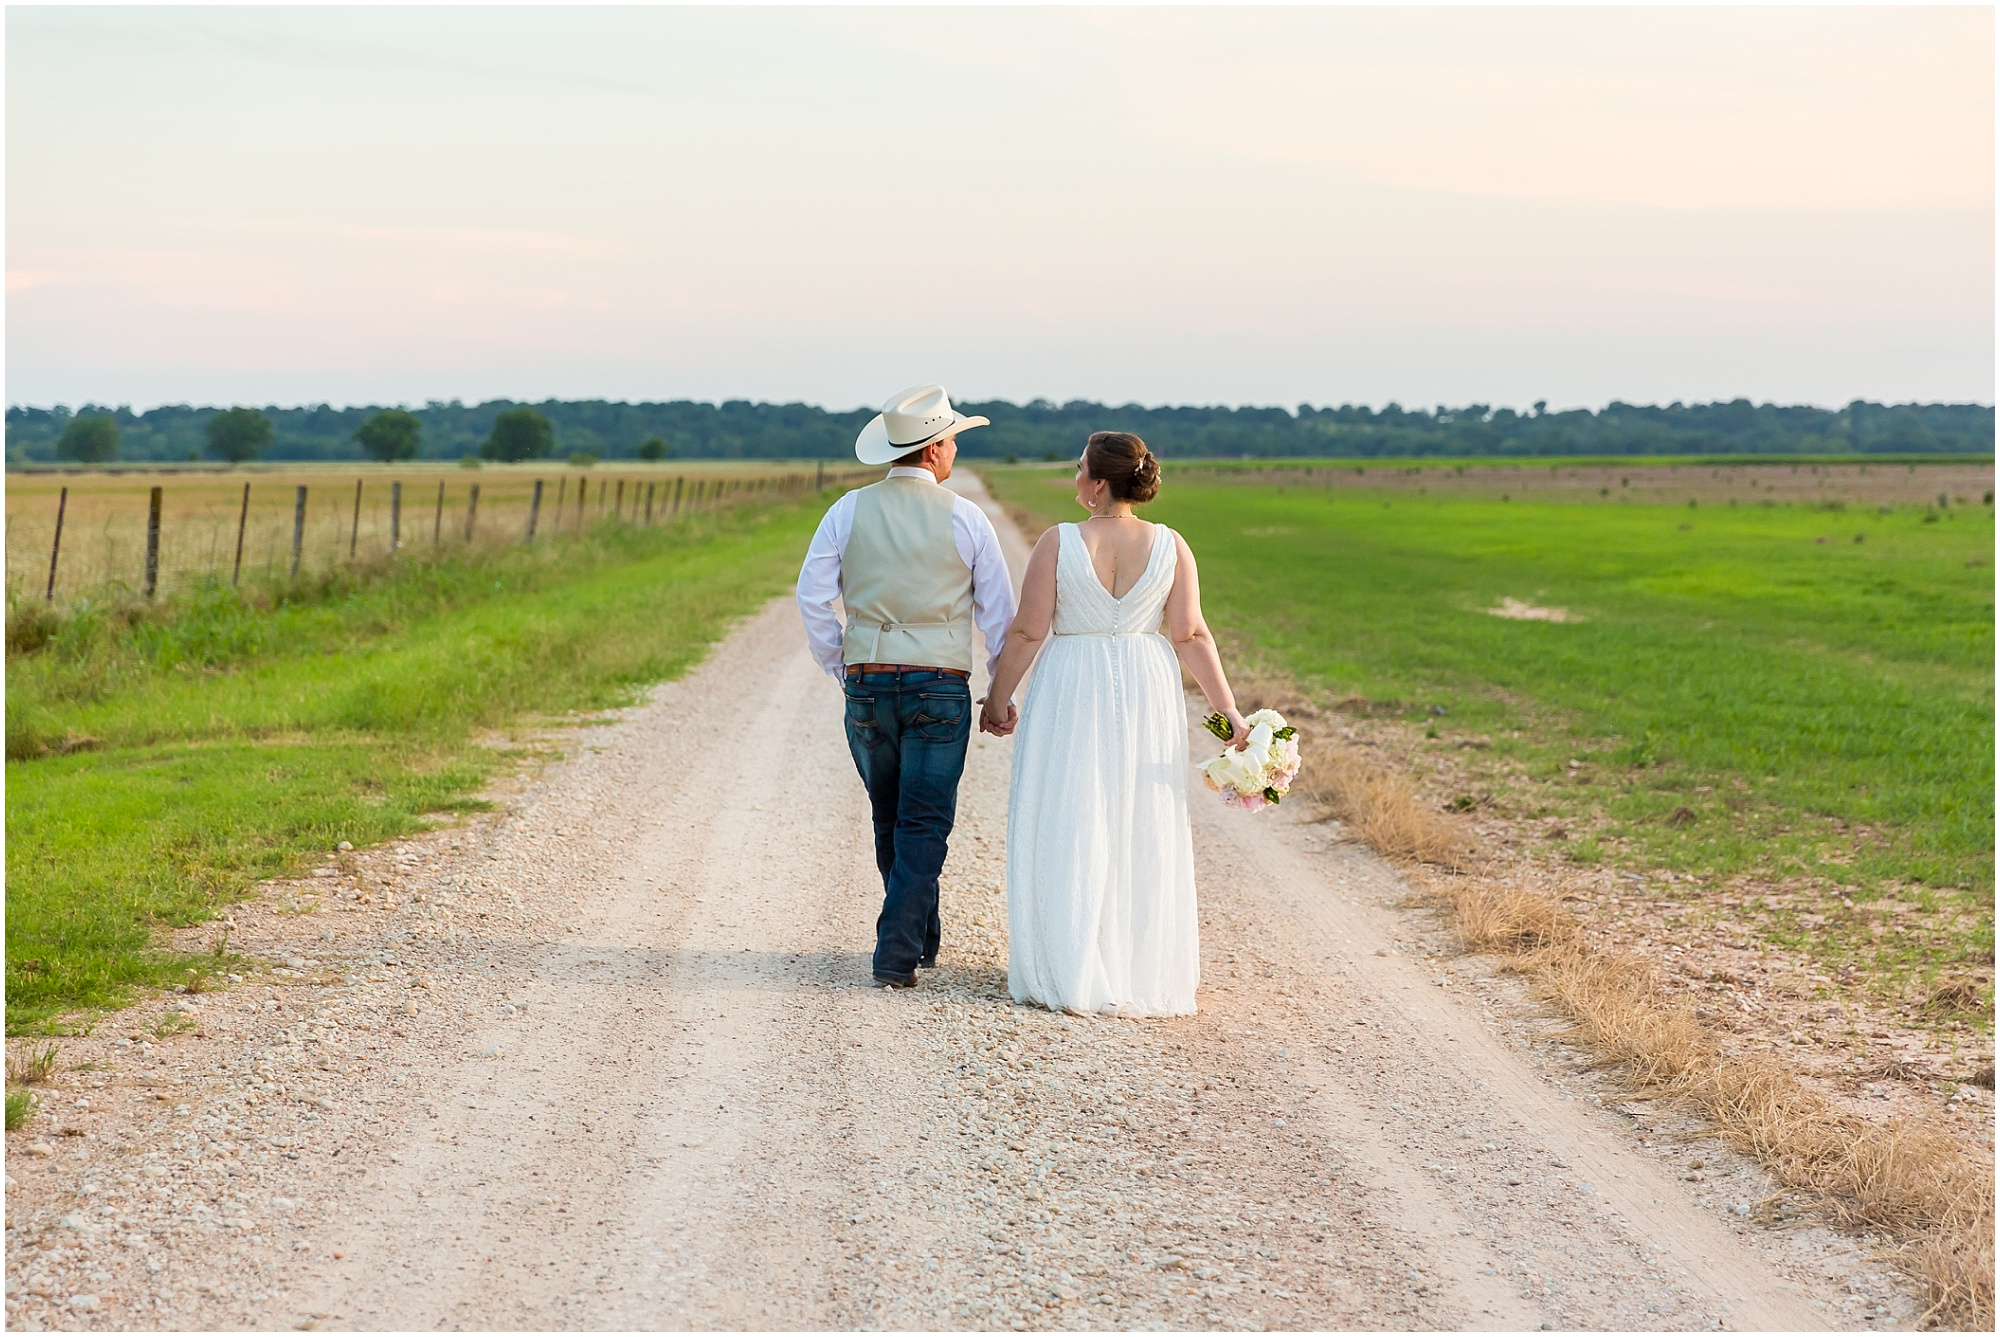 A just married couple walks hand-in-hand down a dirt road outside their wedding reception at Moon River Ranch | Jason & Melaina Photography | www.jasonandmelaina.com